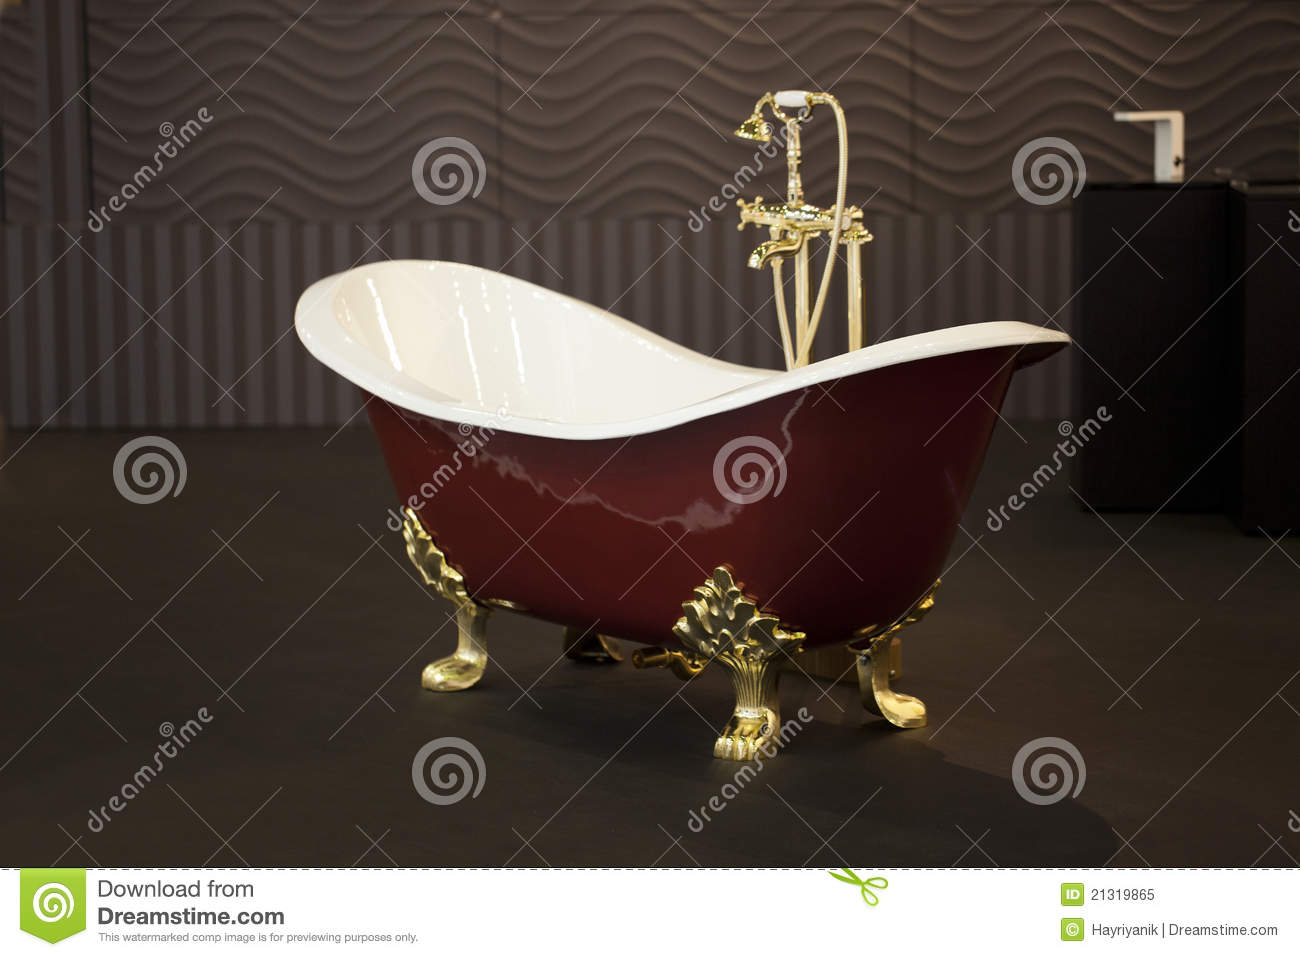 Gold Clawfoot Bath Tub stock image. Image of golden, clawfeet - 21319865